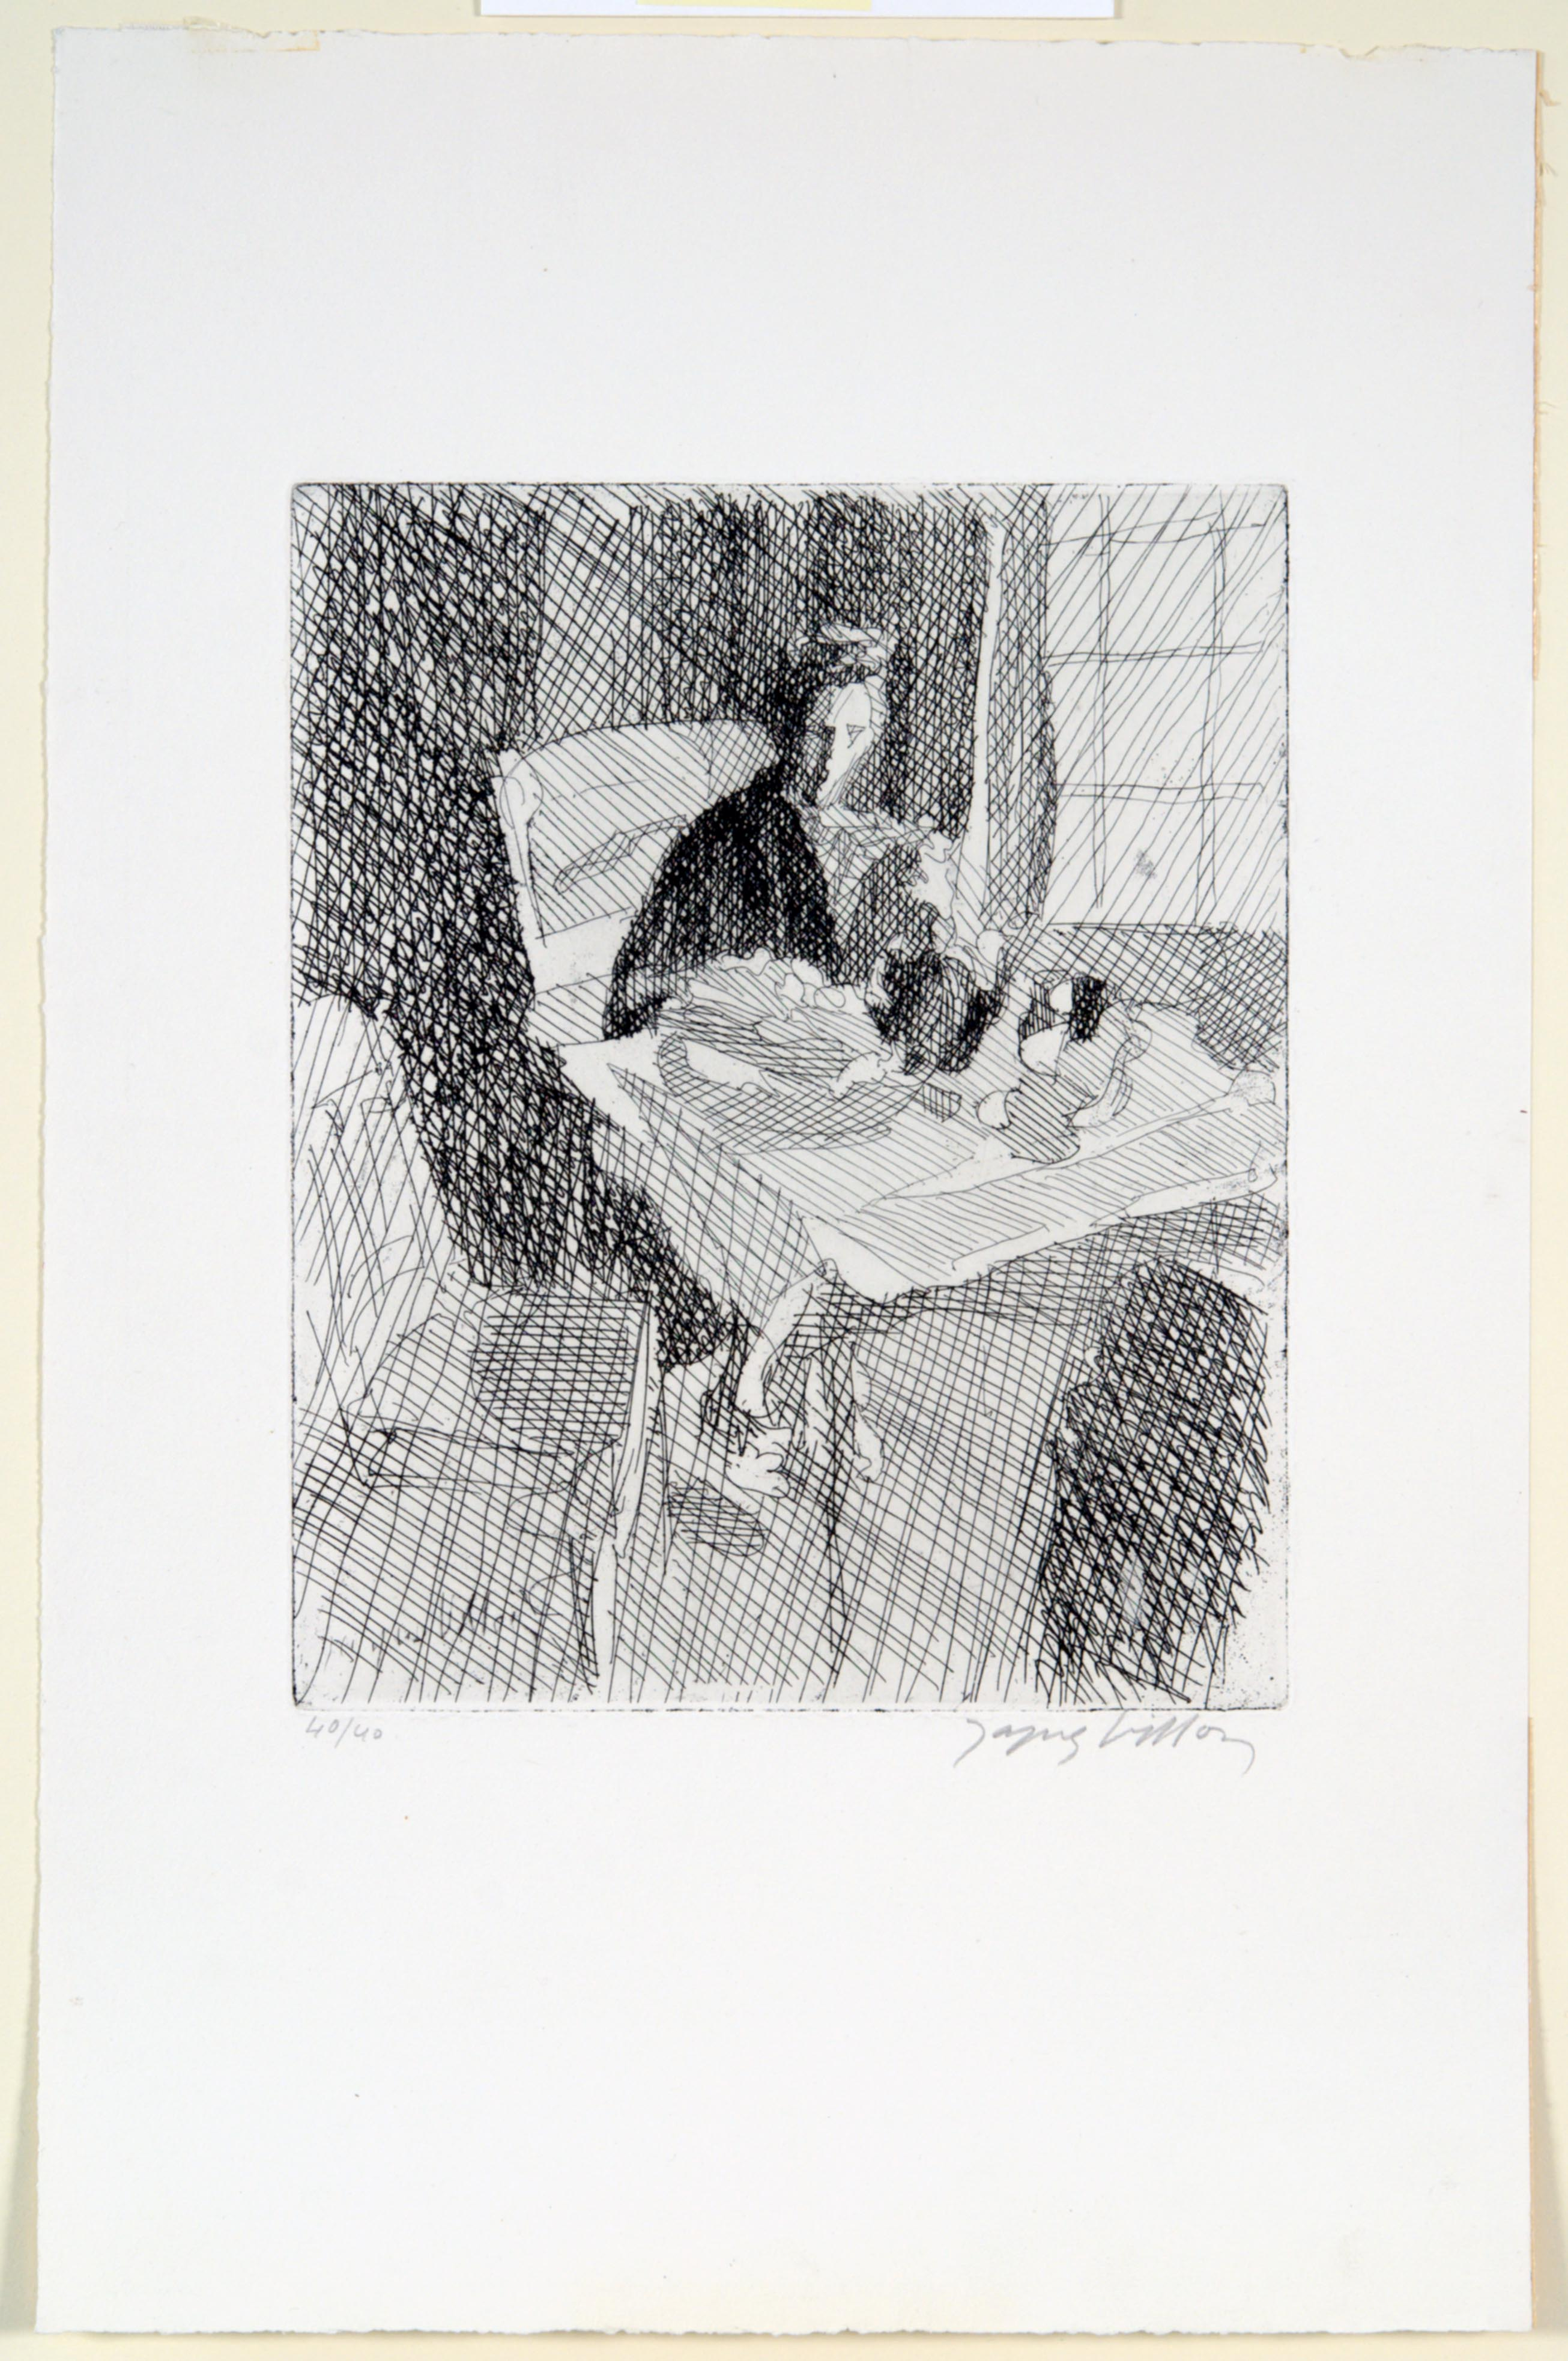 Jacques Villon, Interior, 1943